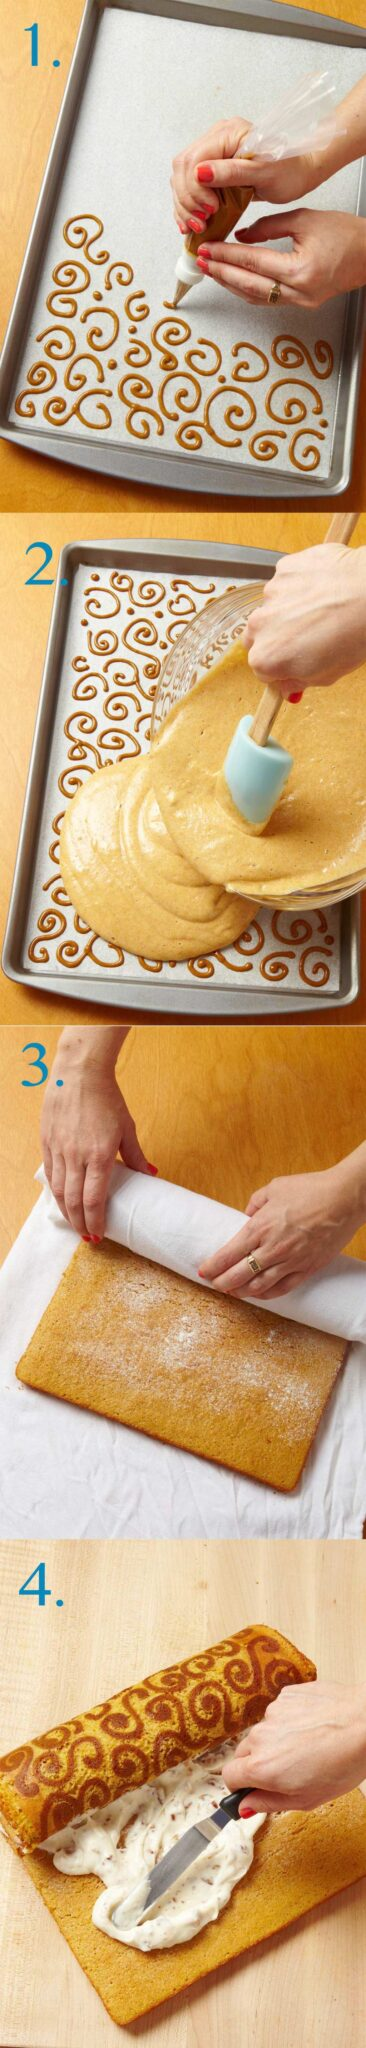 Steps on making a Pumpkin Cake Roll With Toffee Cream Cheese Filling